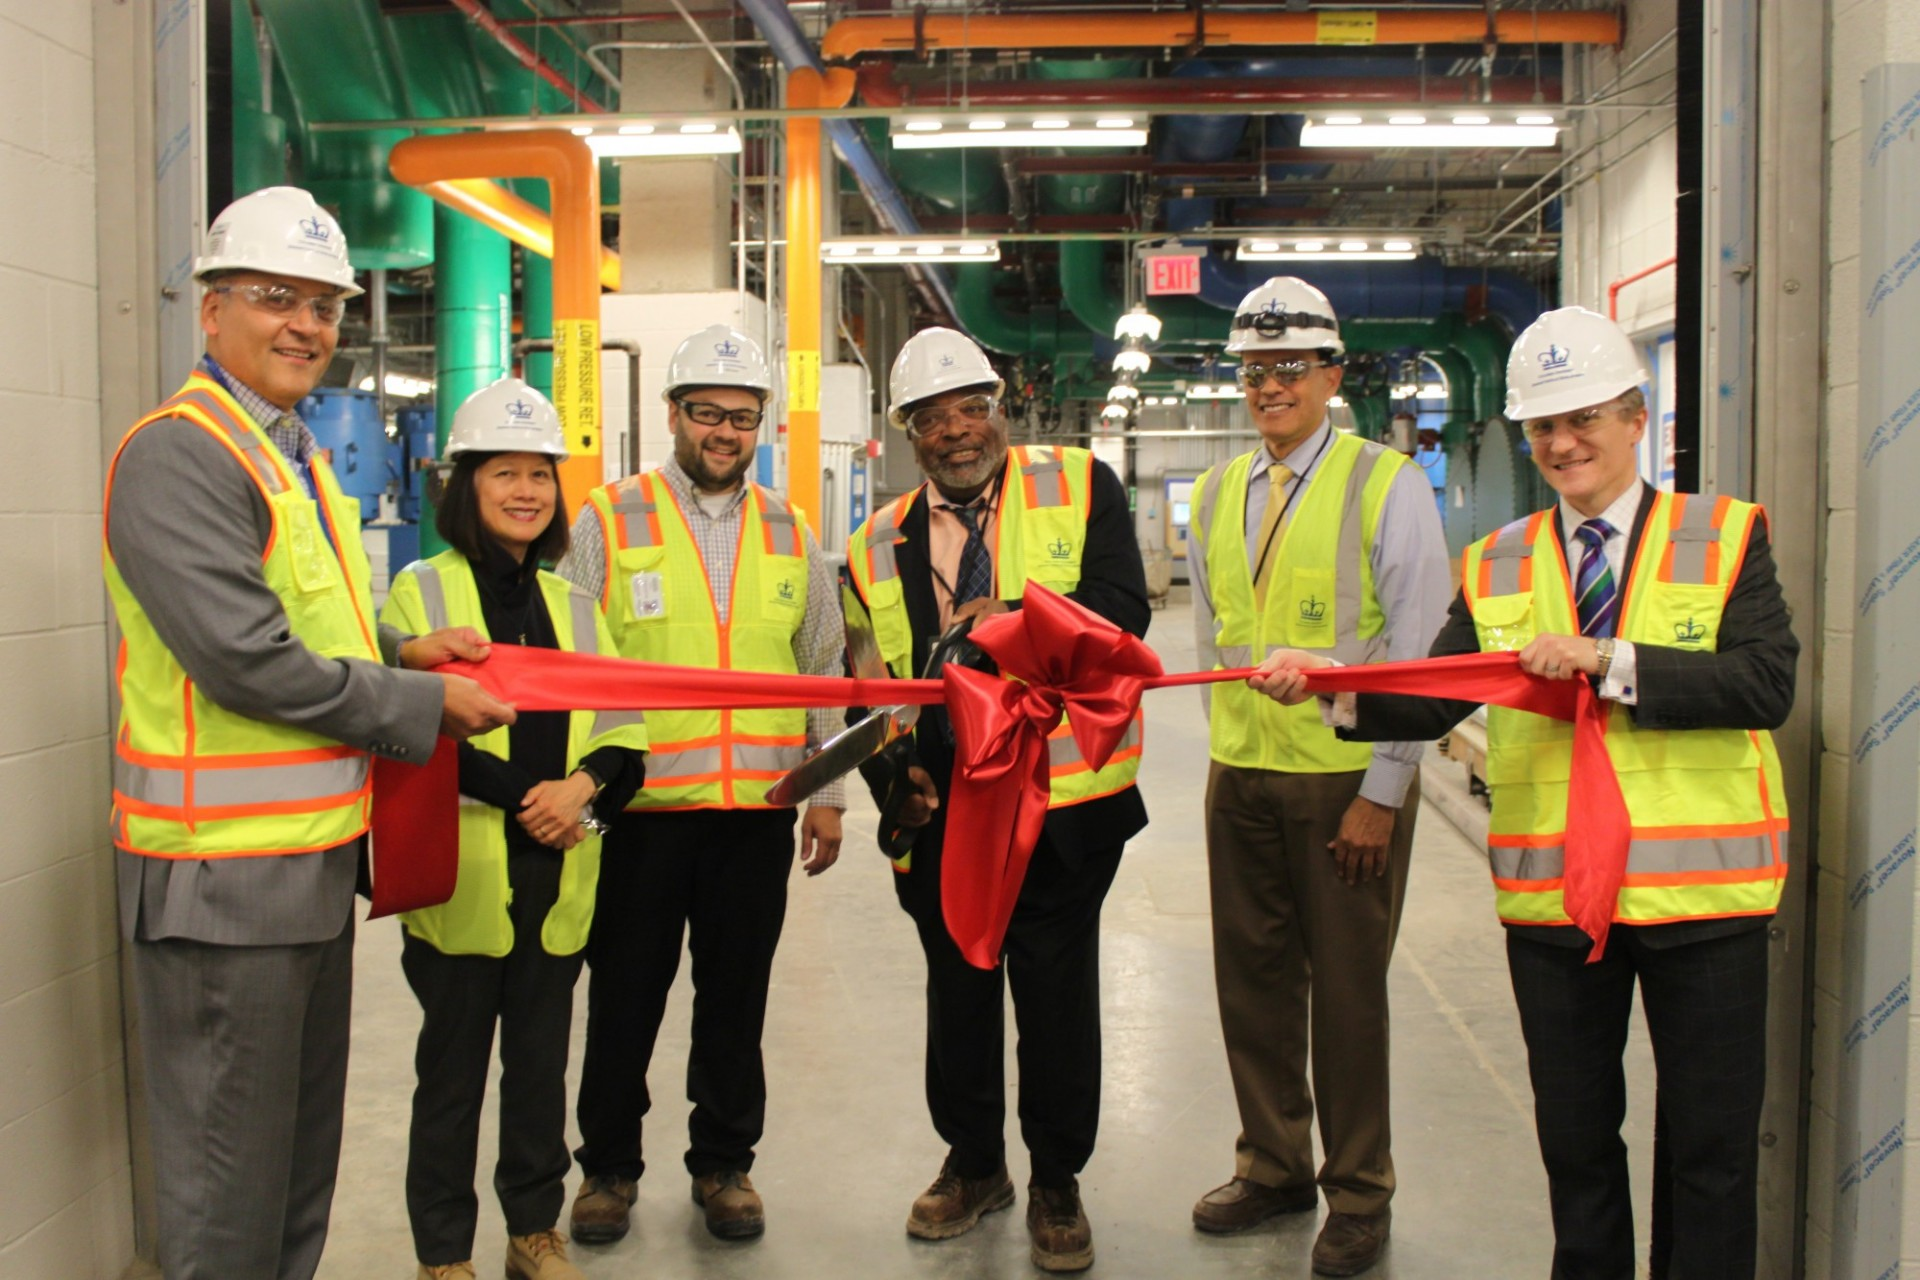 Photo from the ribbon cutting event marking the opening of the Central Energy Plant in Manhattanville.